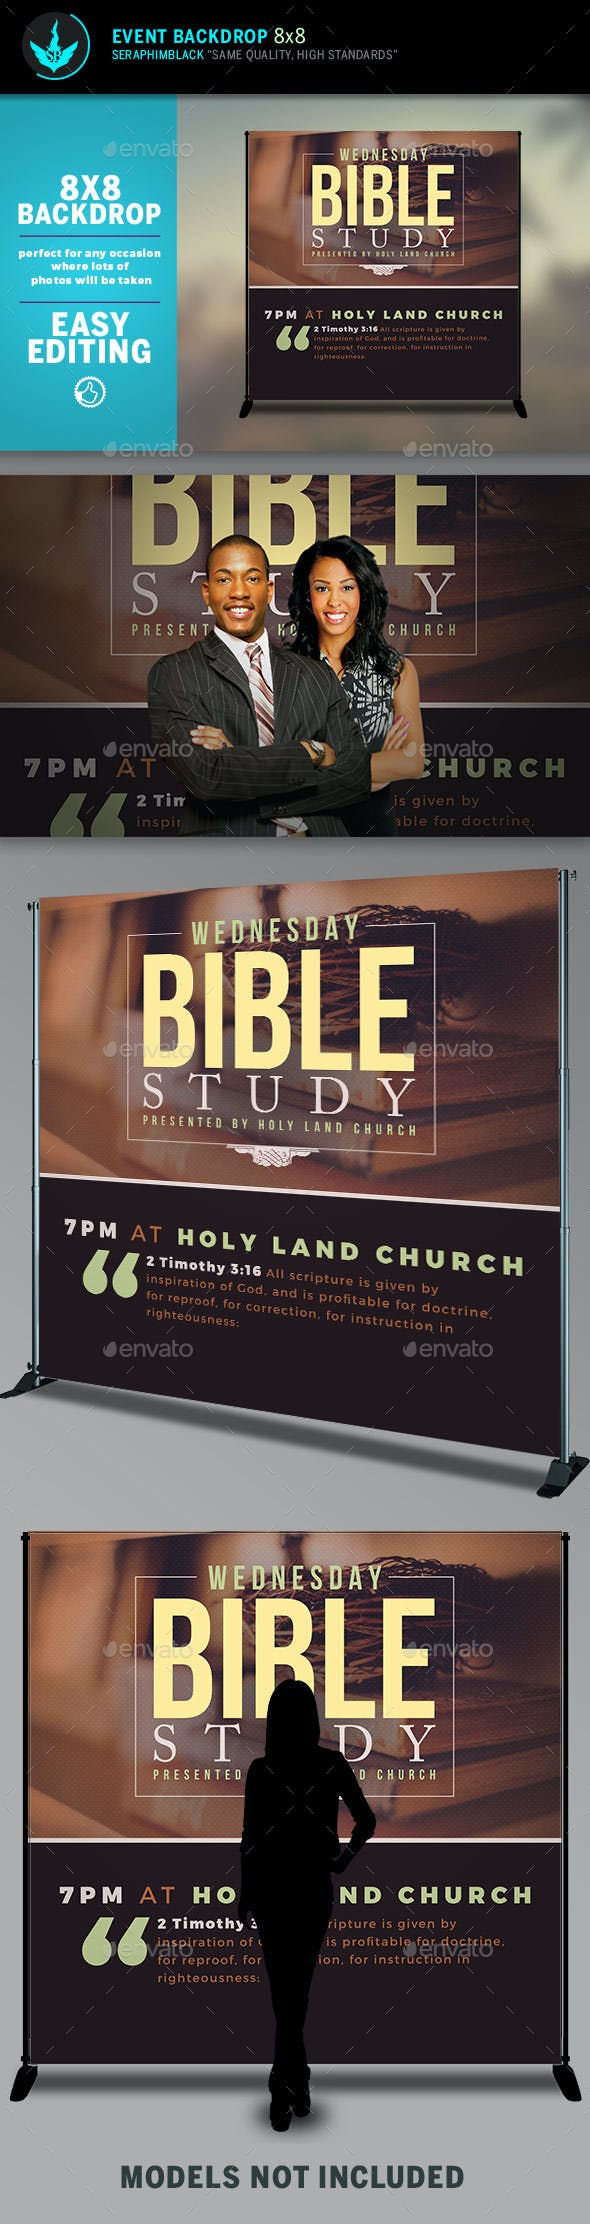 Bible Study 8x8 Event  Backdrop Template